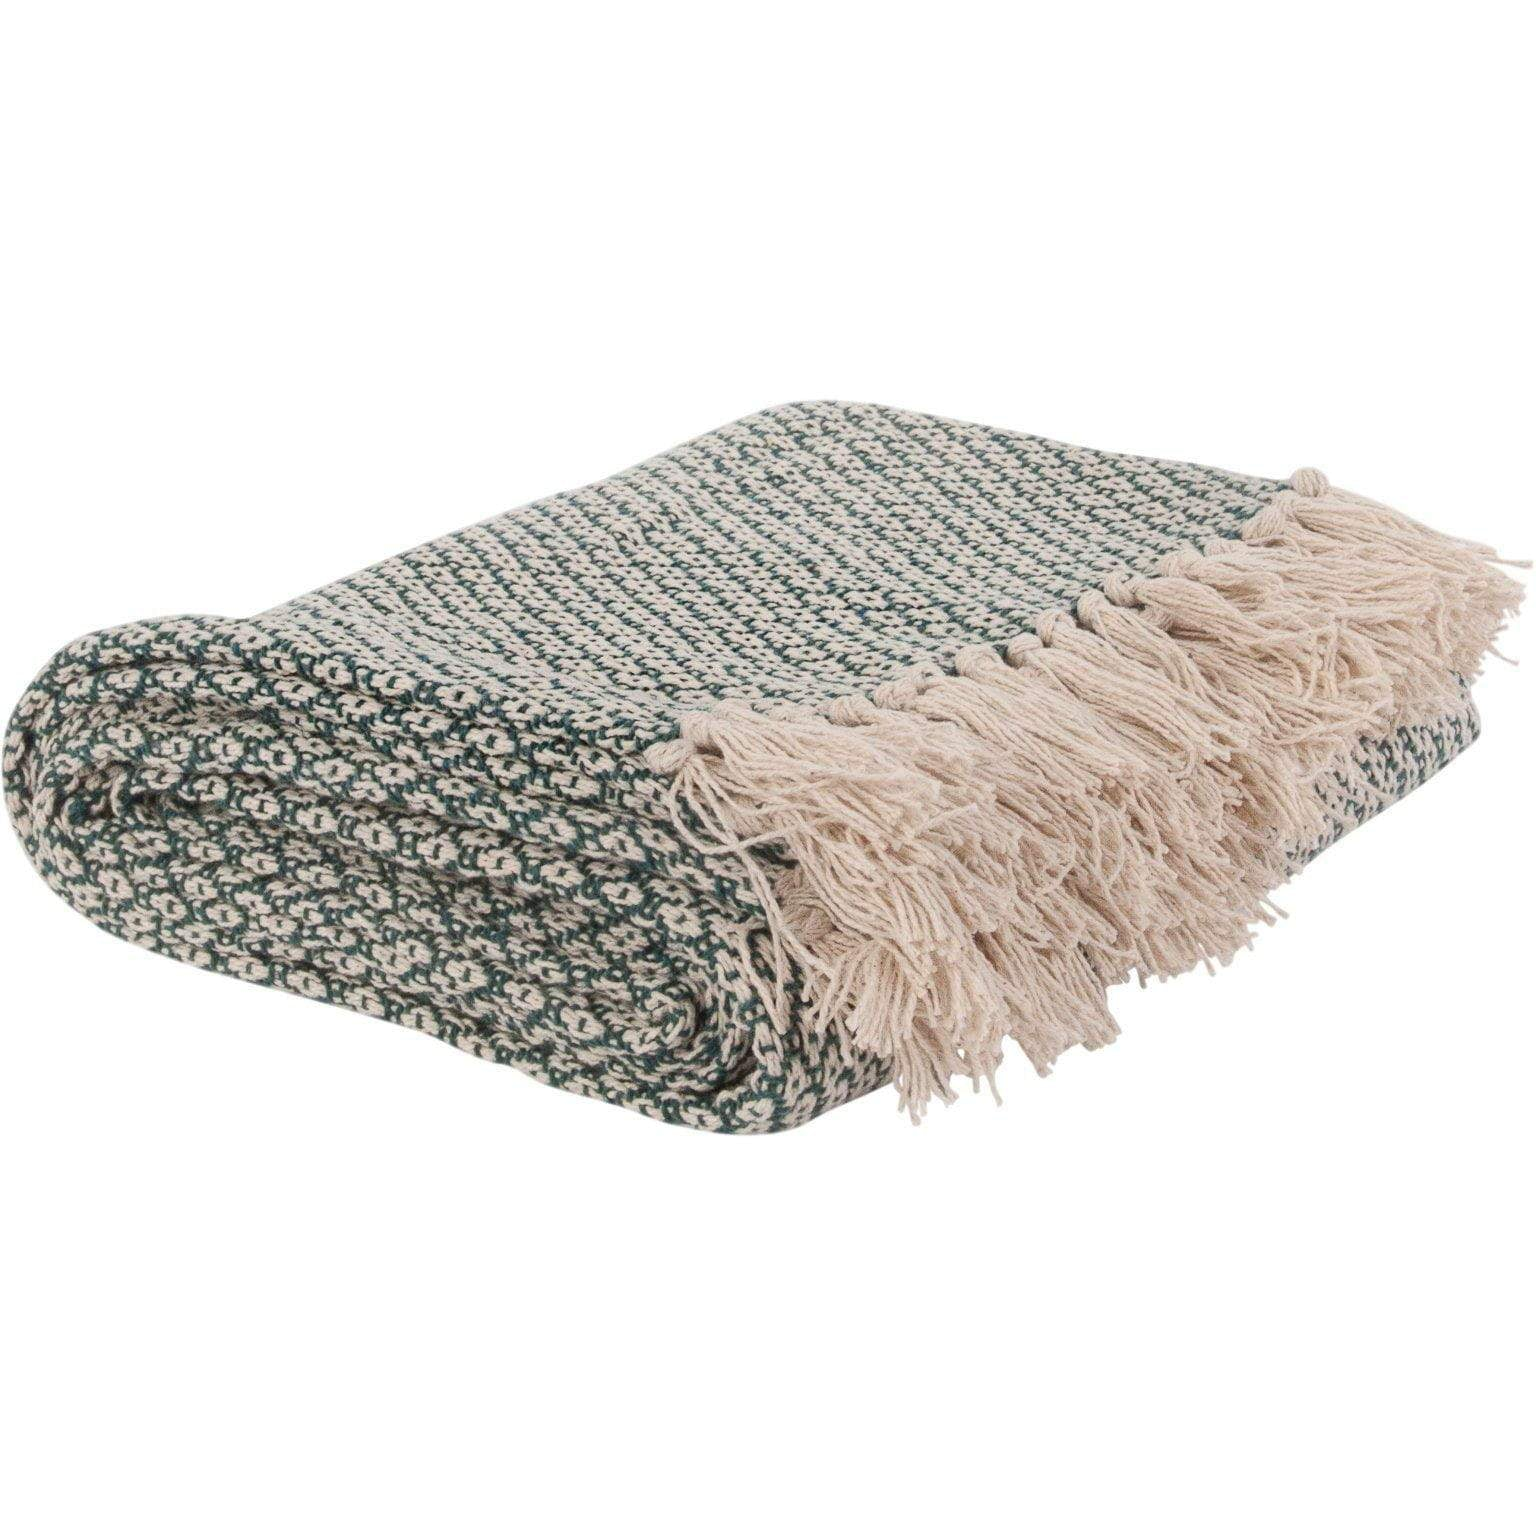 Ian Snow Ltd Jade Cotton Diamond Weave Throw